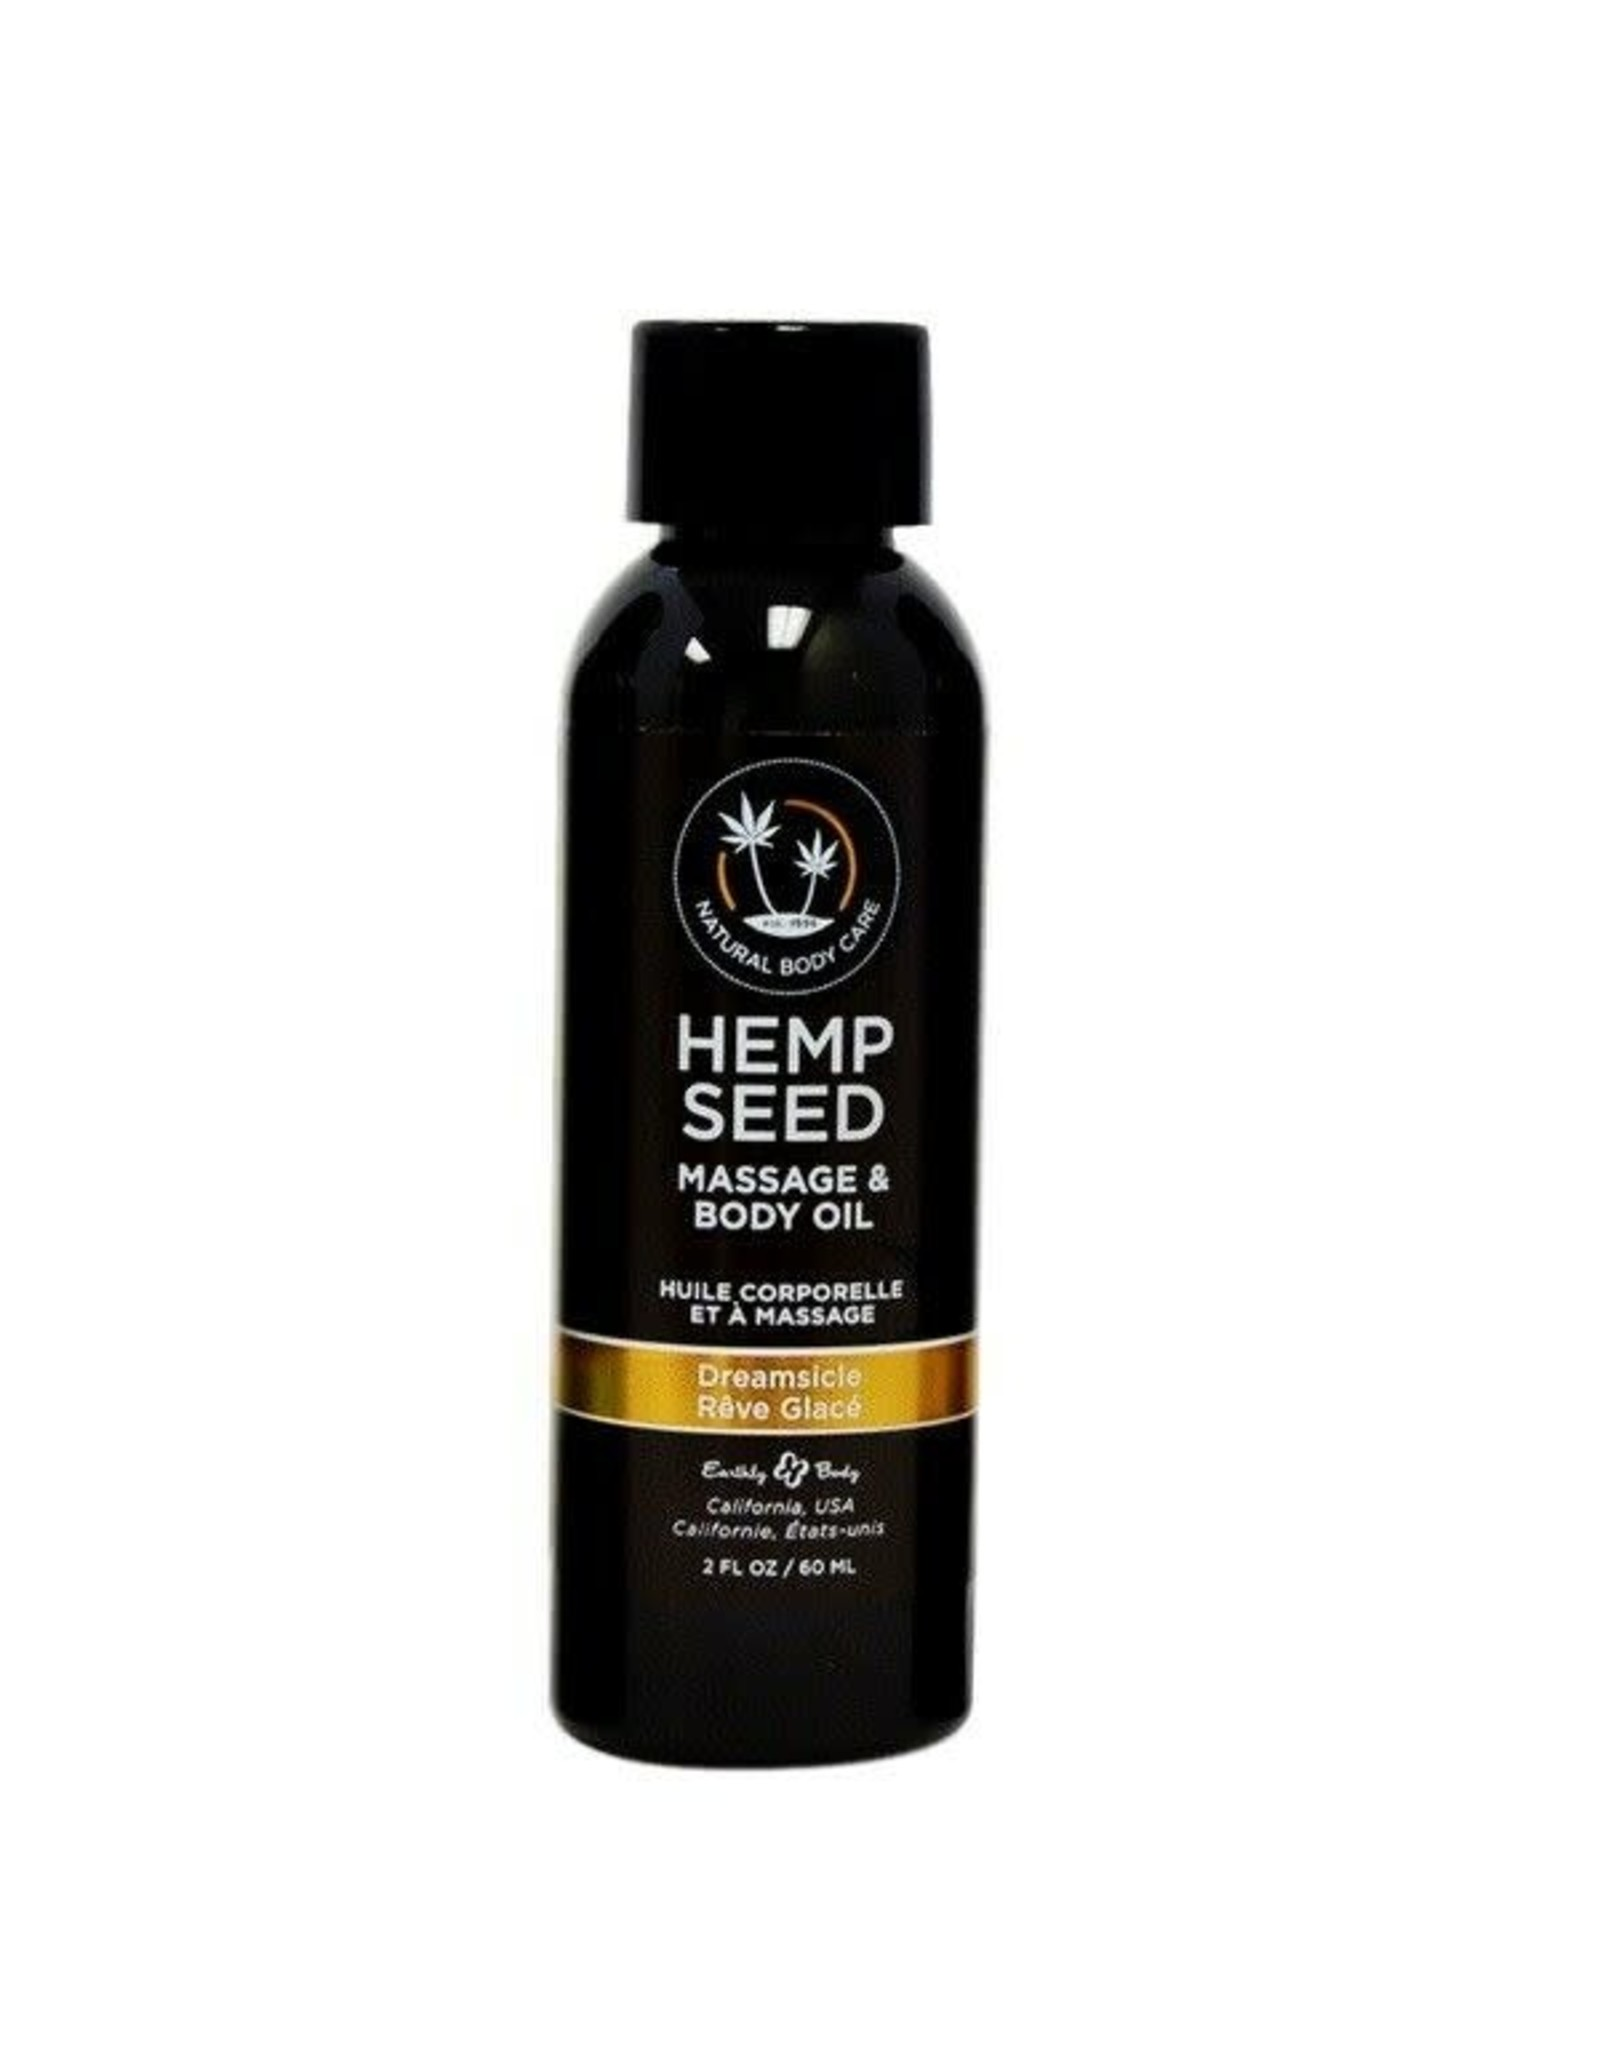 EARTHLY BODY EARTHLY BODIES - HEMP SEED MASSAGE OIL - DREAMSICLE 2oz